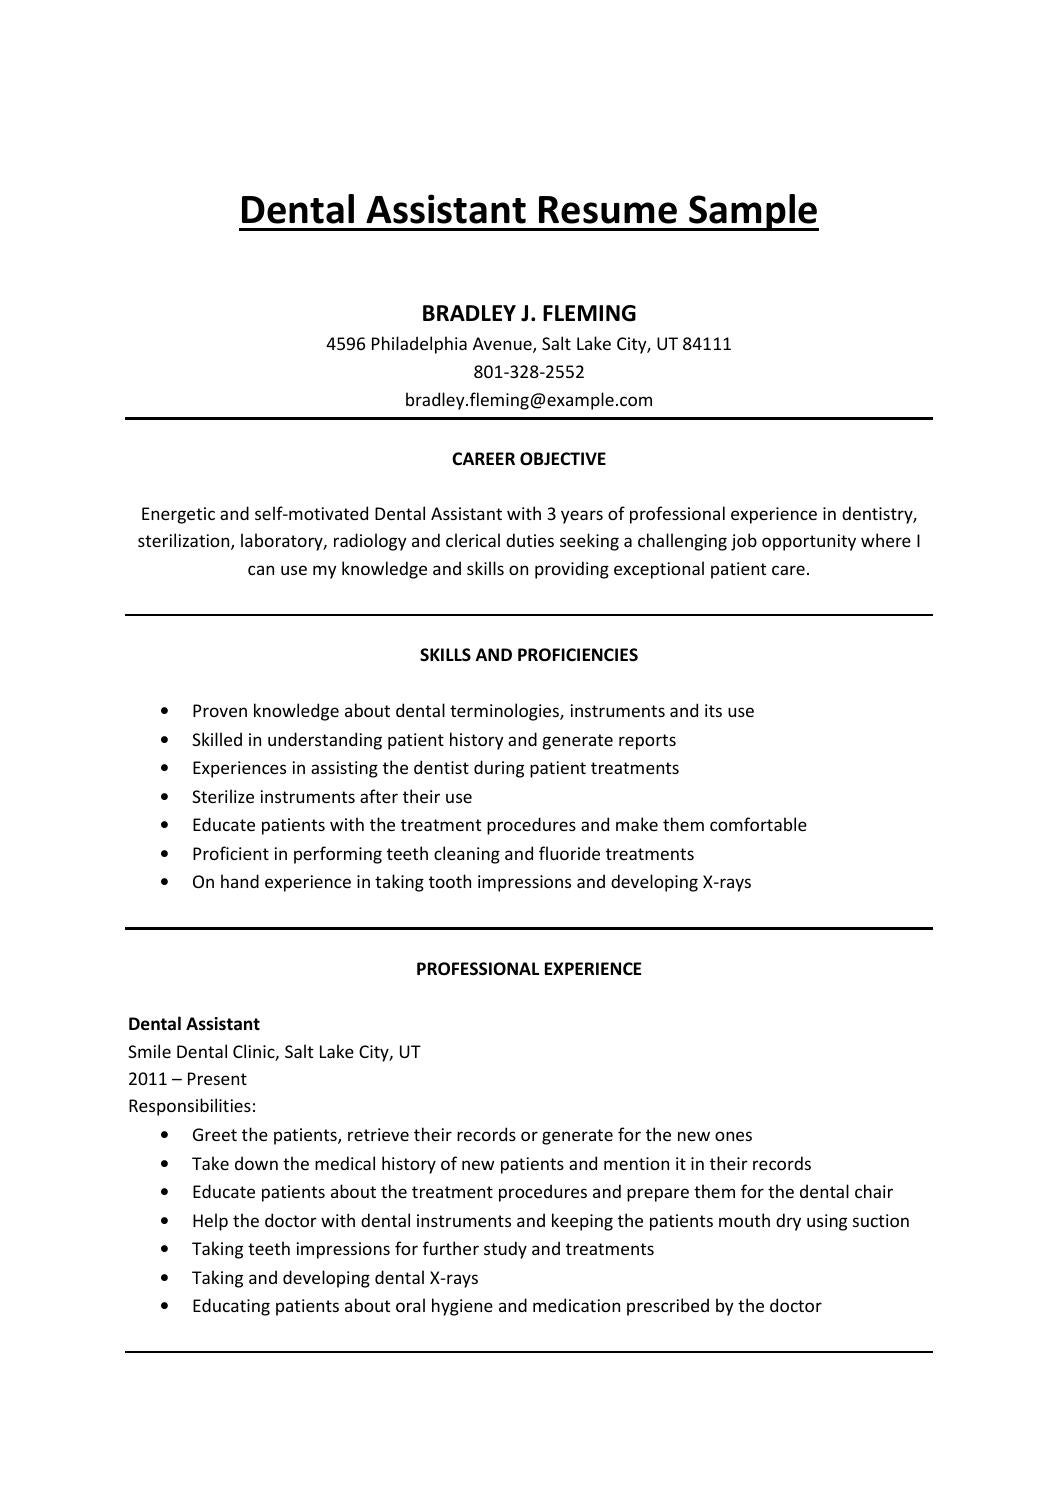 Dental Assistant Resume Sample By Mark Stone Issuu